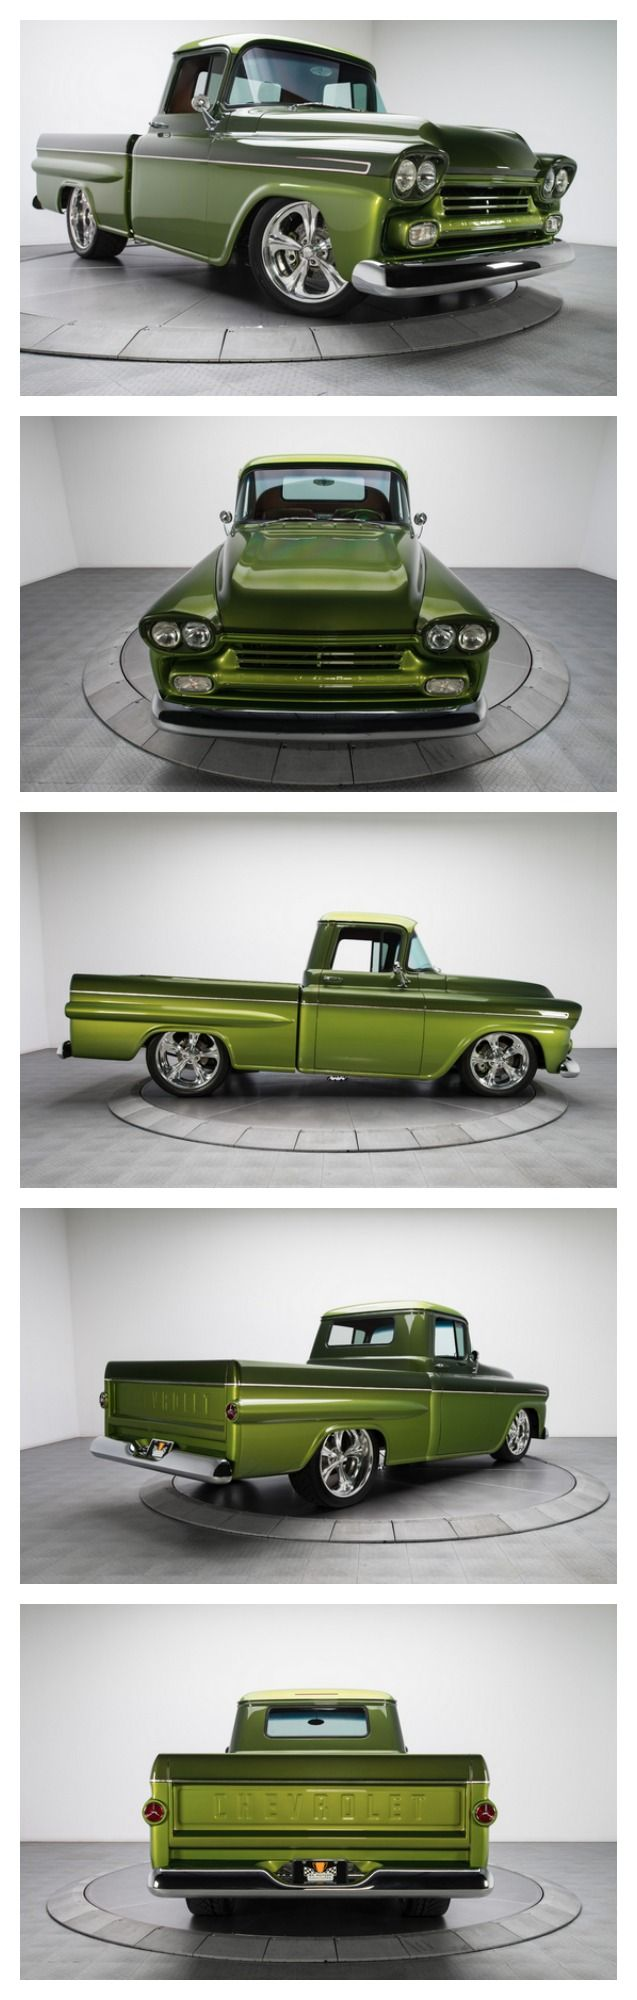 """Perpetually cool and visually stunning, this awesome Chevy """"Koolant"""" pickup is a near perfect example of a custom made road warrior"""